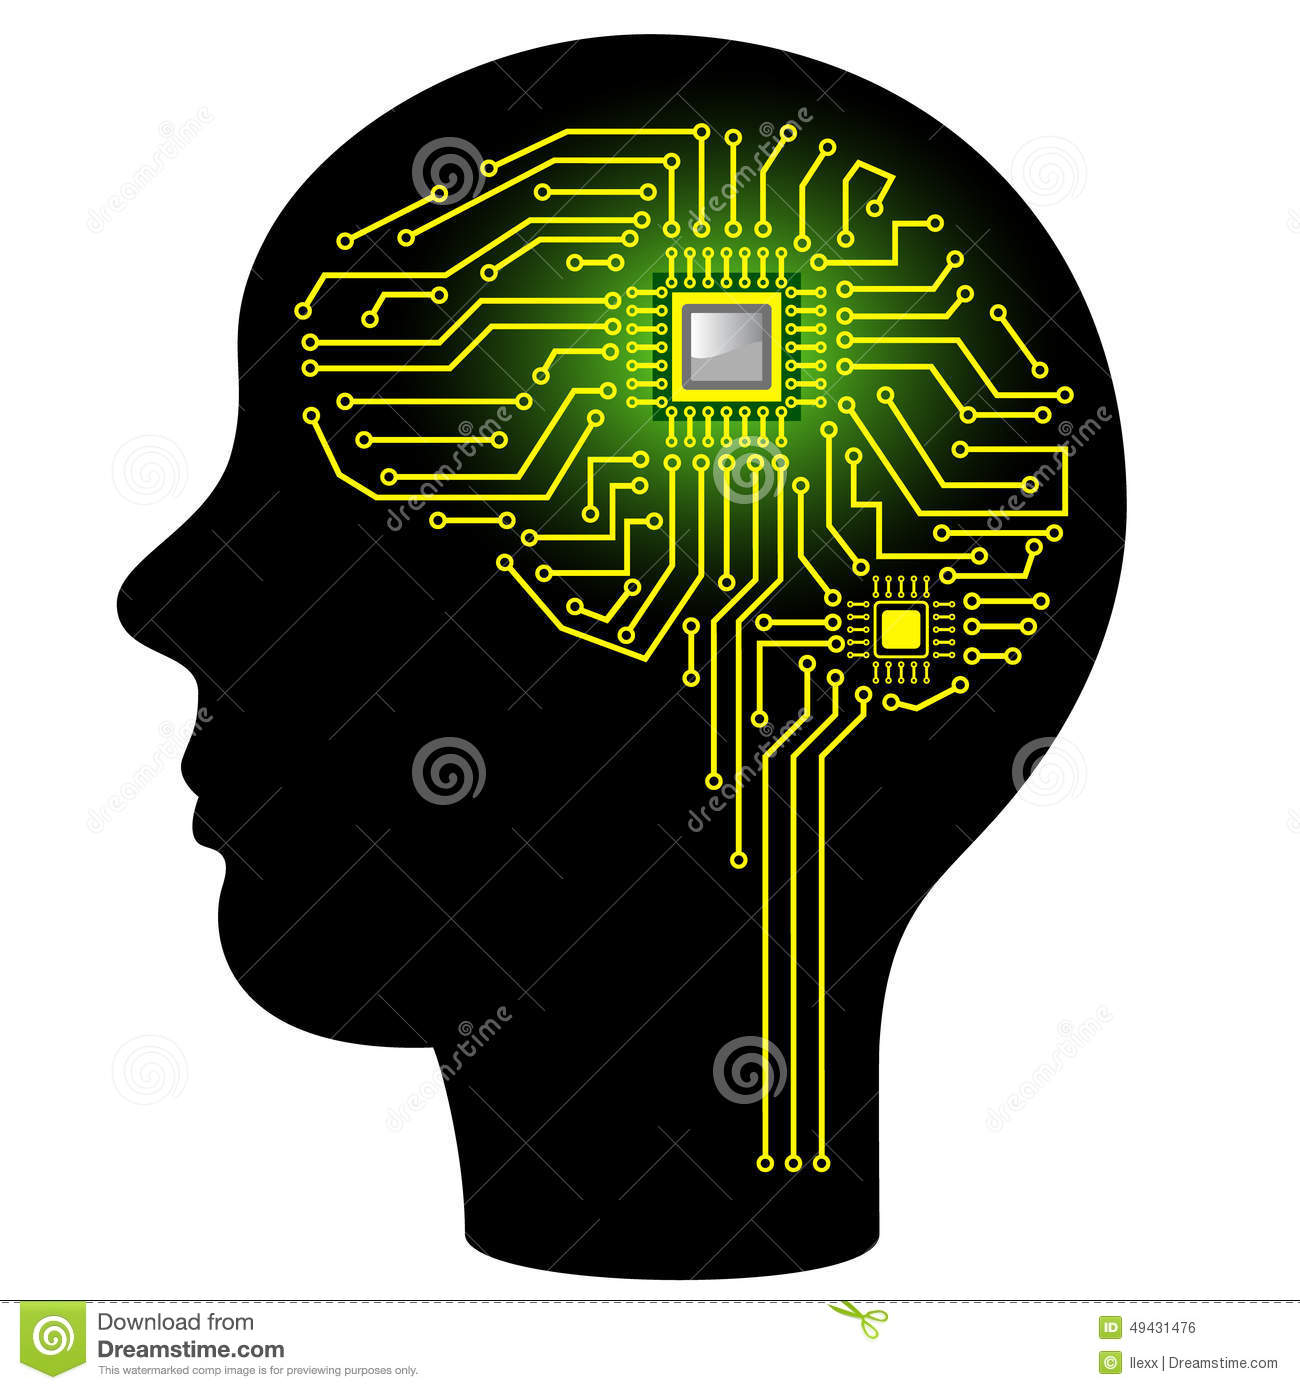 Circuit Brain Reusable : Digital brain stock illustration image of chip